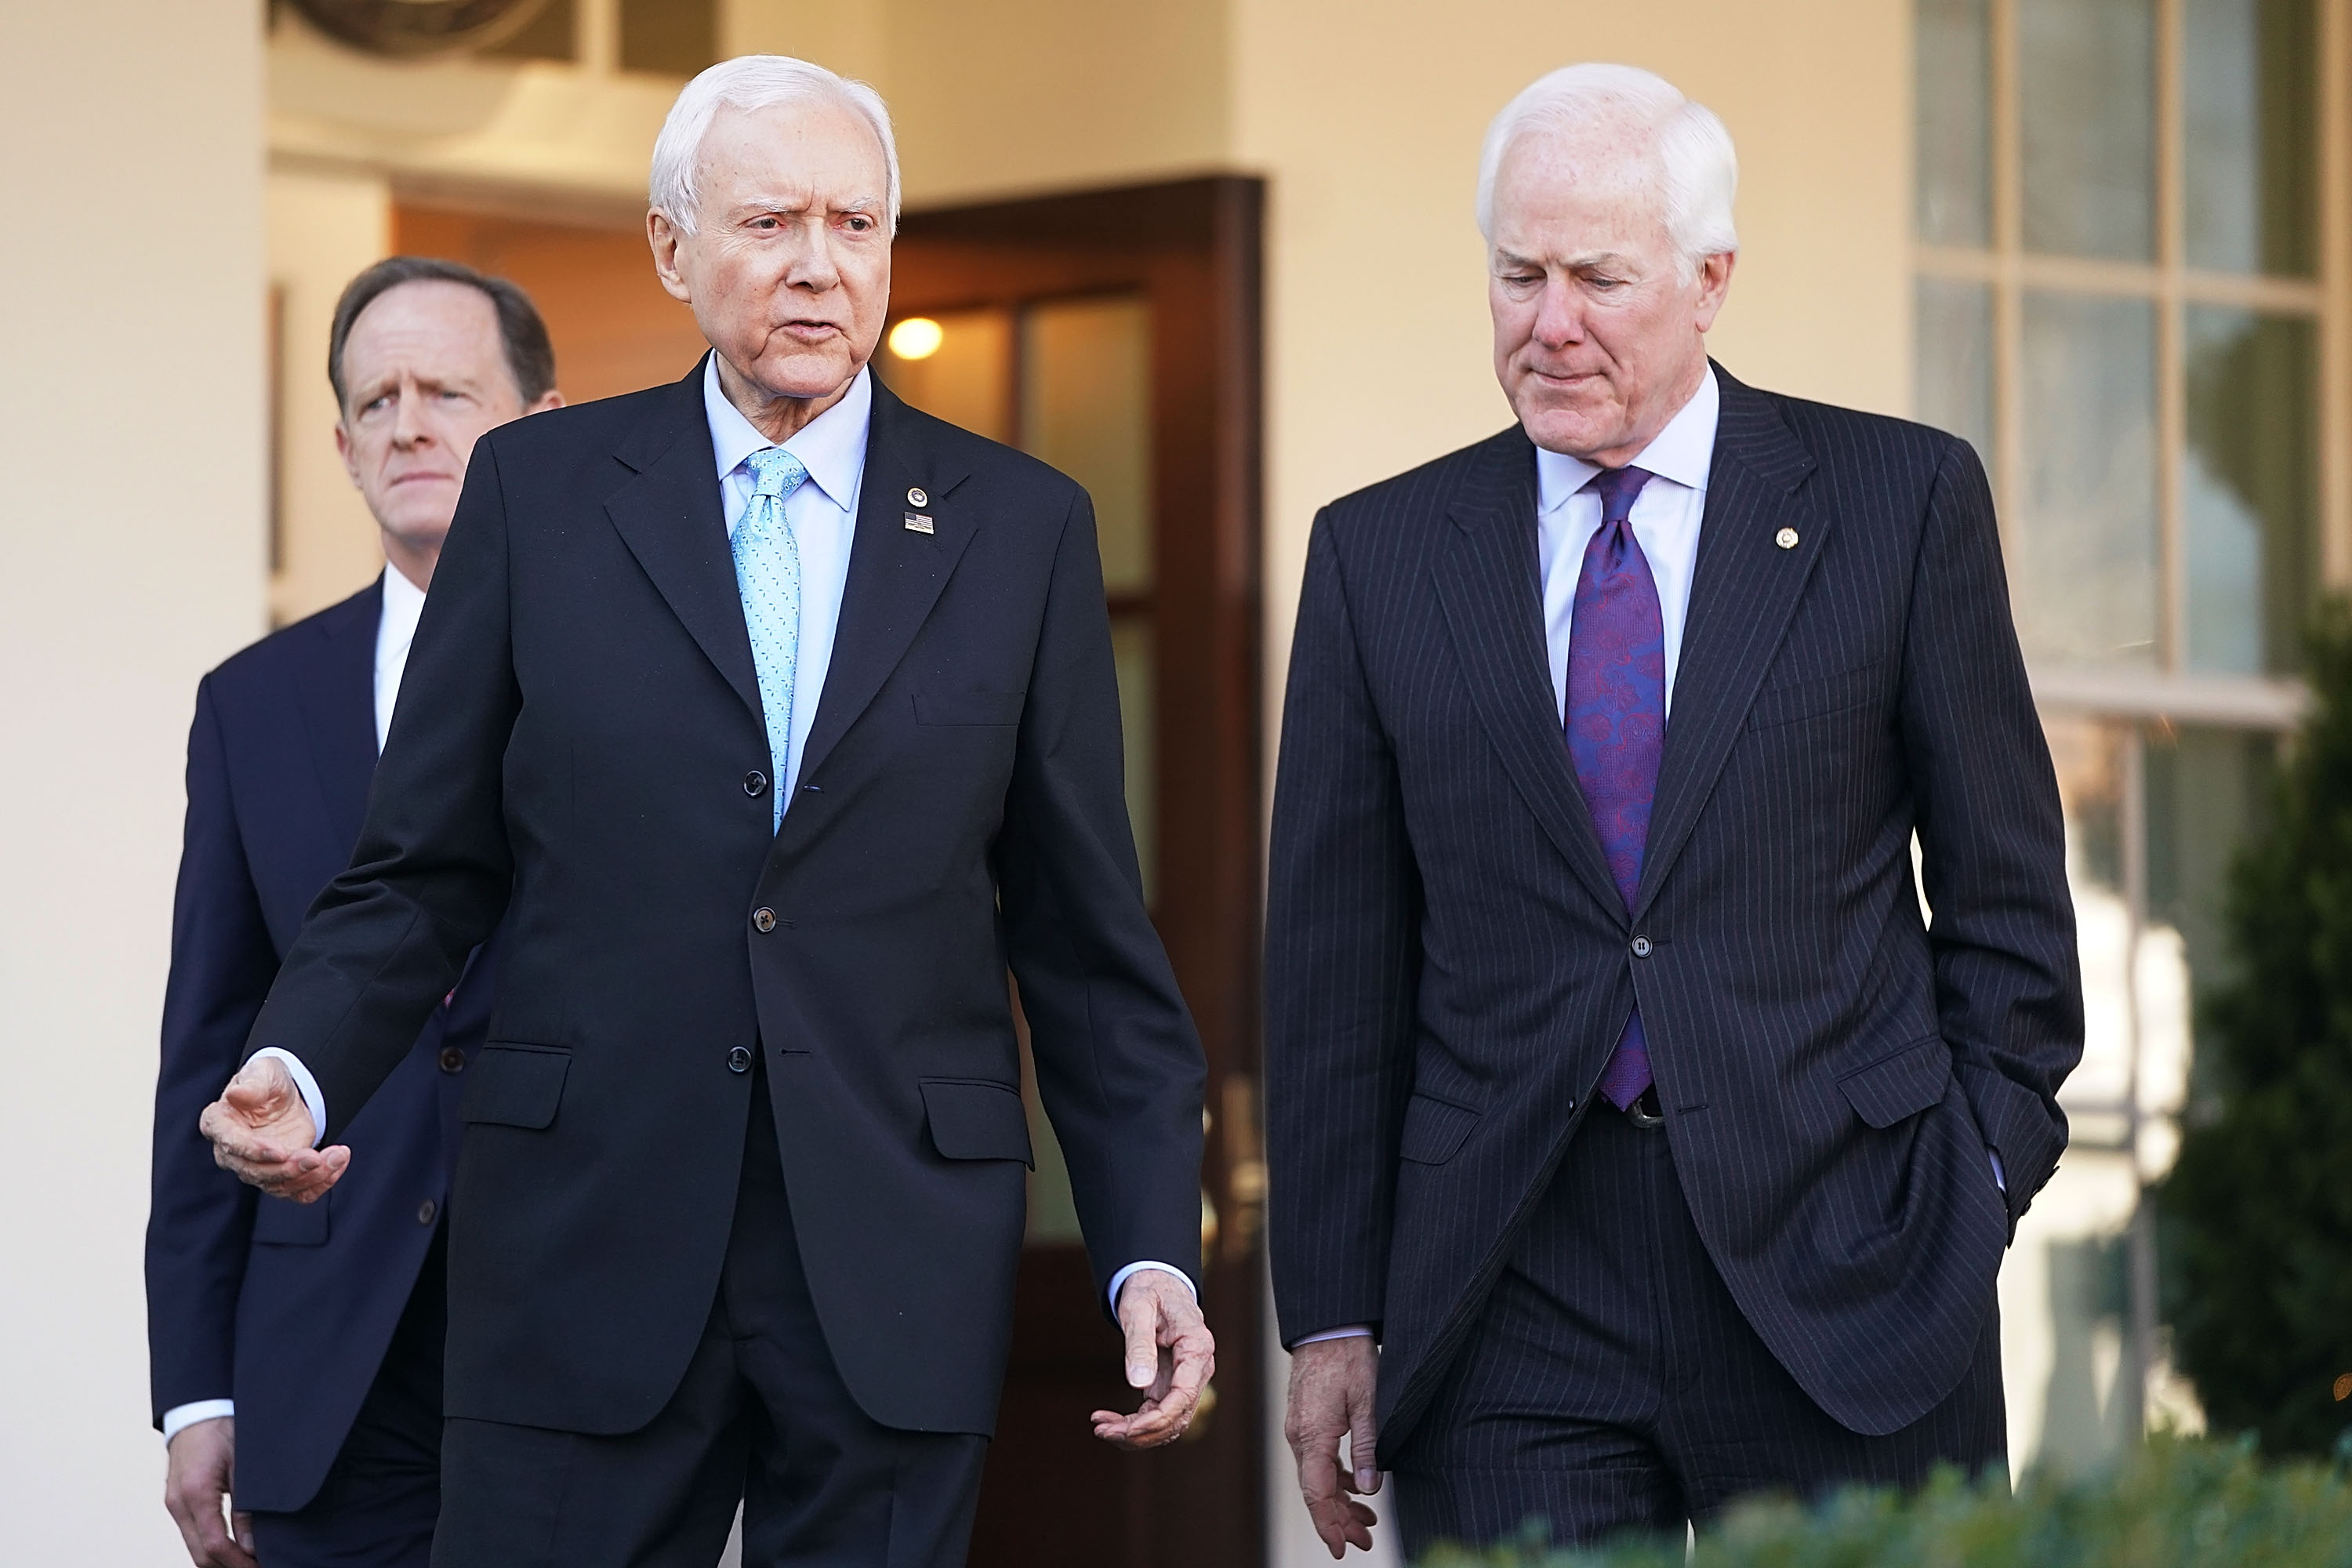 Senate Finance Committee members Sen. Pat Toomey (R-PA) (L) and Sen. John Cornyn (R-TX) (R) walk out of the West Wing with Chairman Orrin Hatch (R-UT) following a lunch meeting with U.S. President Donald Trump at the White House November 27, 2017 in Washington, DC.